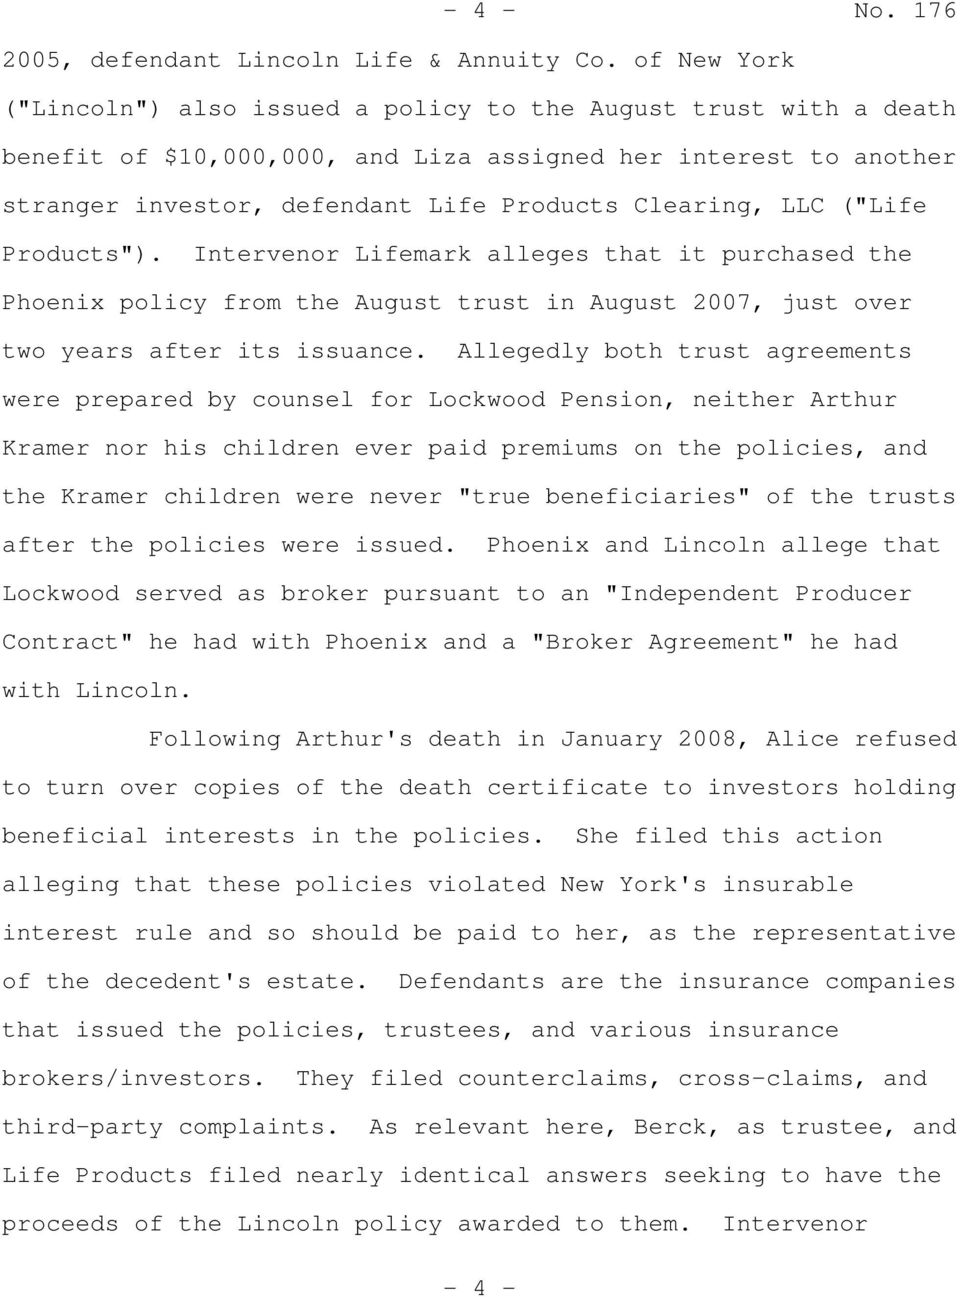 "LLC (""Life Products""). Intervenor Lifemark alleges that it purchased the Phoenix policy from the August trust in August 2007, just over two years after its issuance."